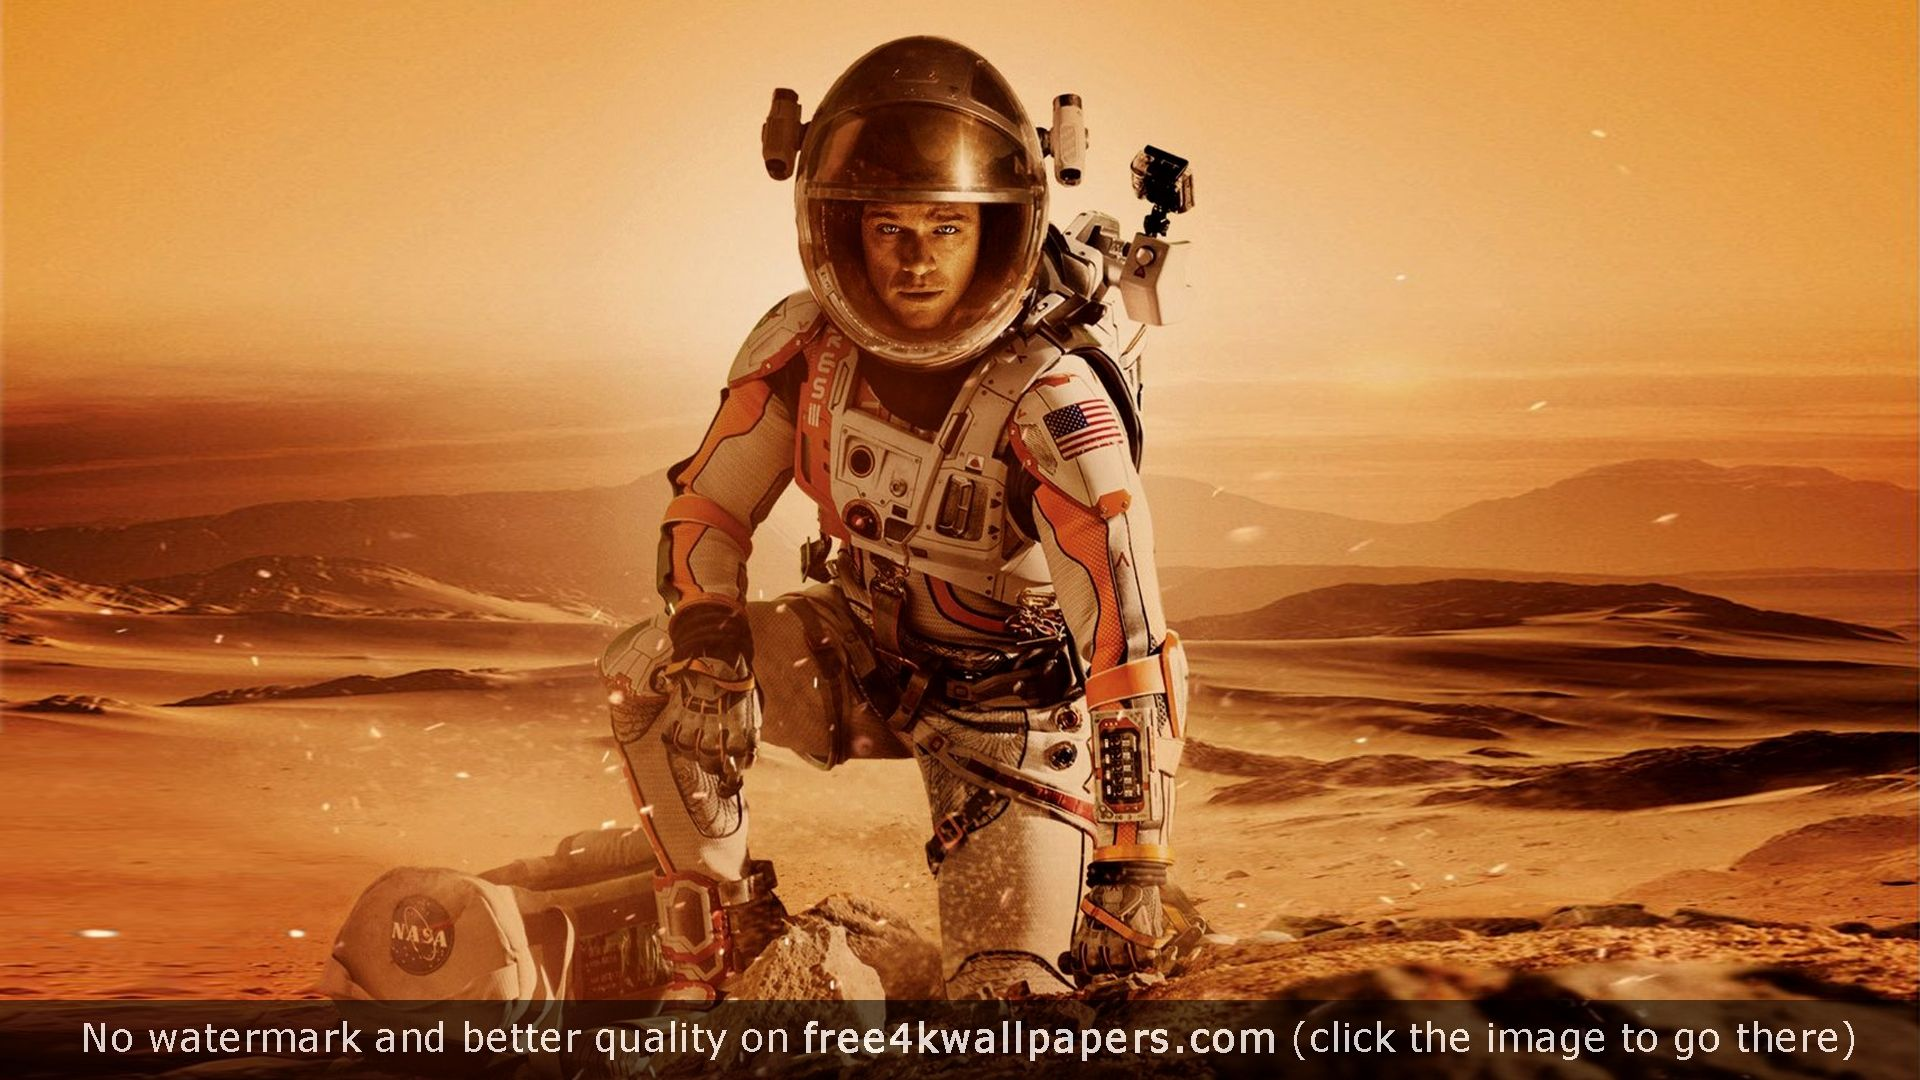 The Martian Movie Hd Wallpaper The Martian Streaming Movies Hd Movies